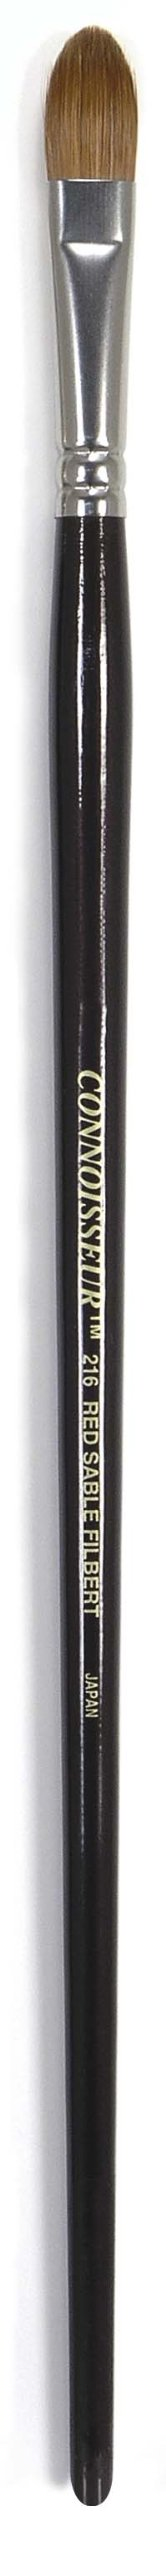 Connoisseur FG125 Pure Red Sable Brush, 6 Filbert by Connoisseur